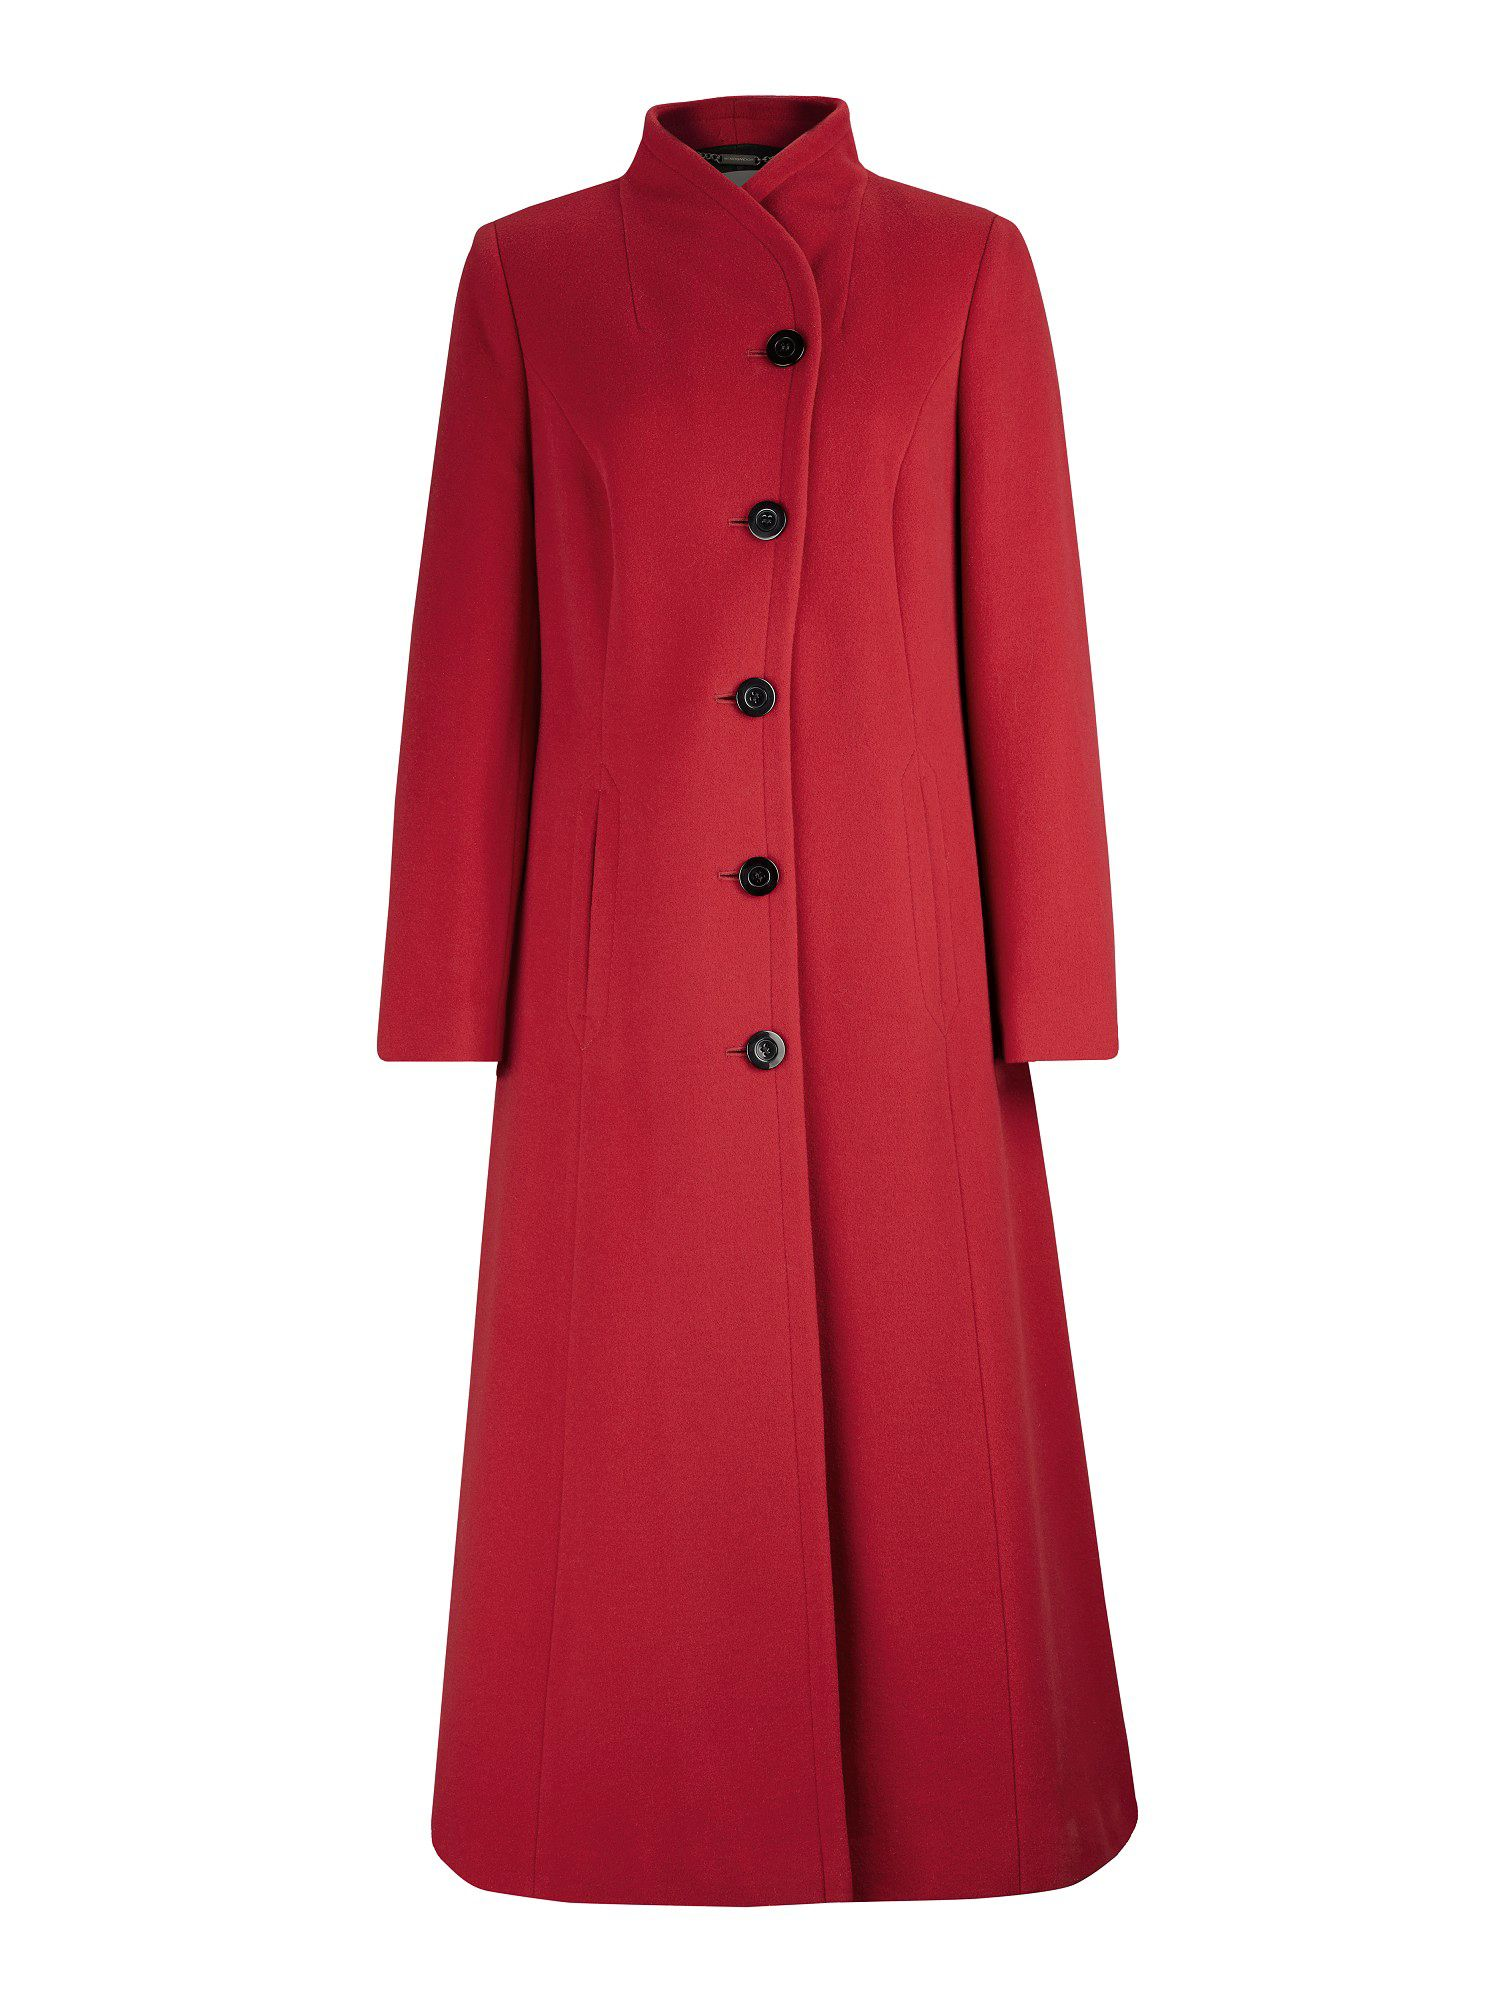 Long fit and flare red coat